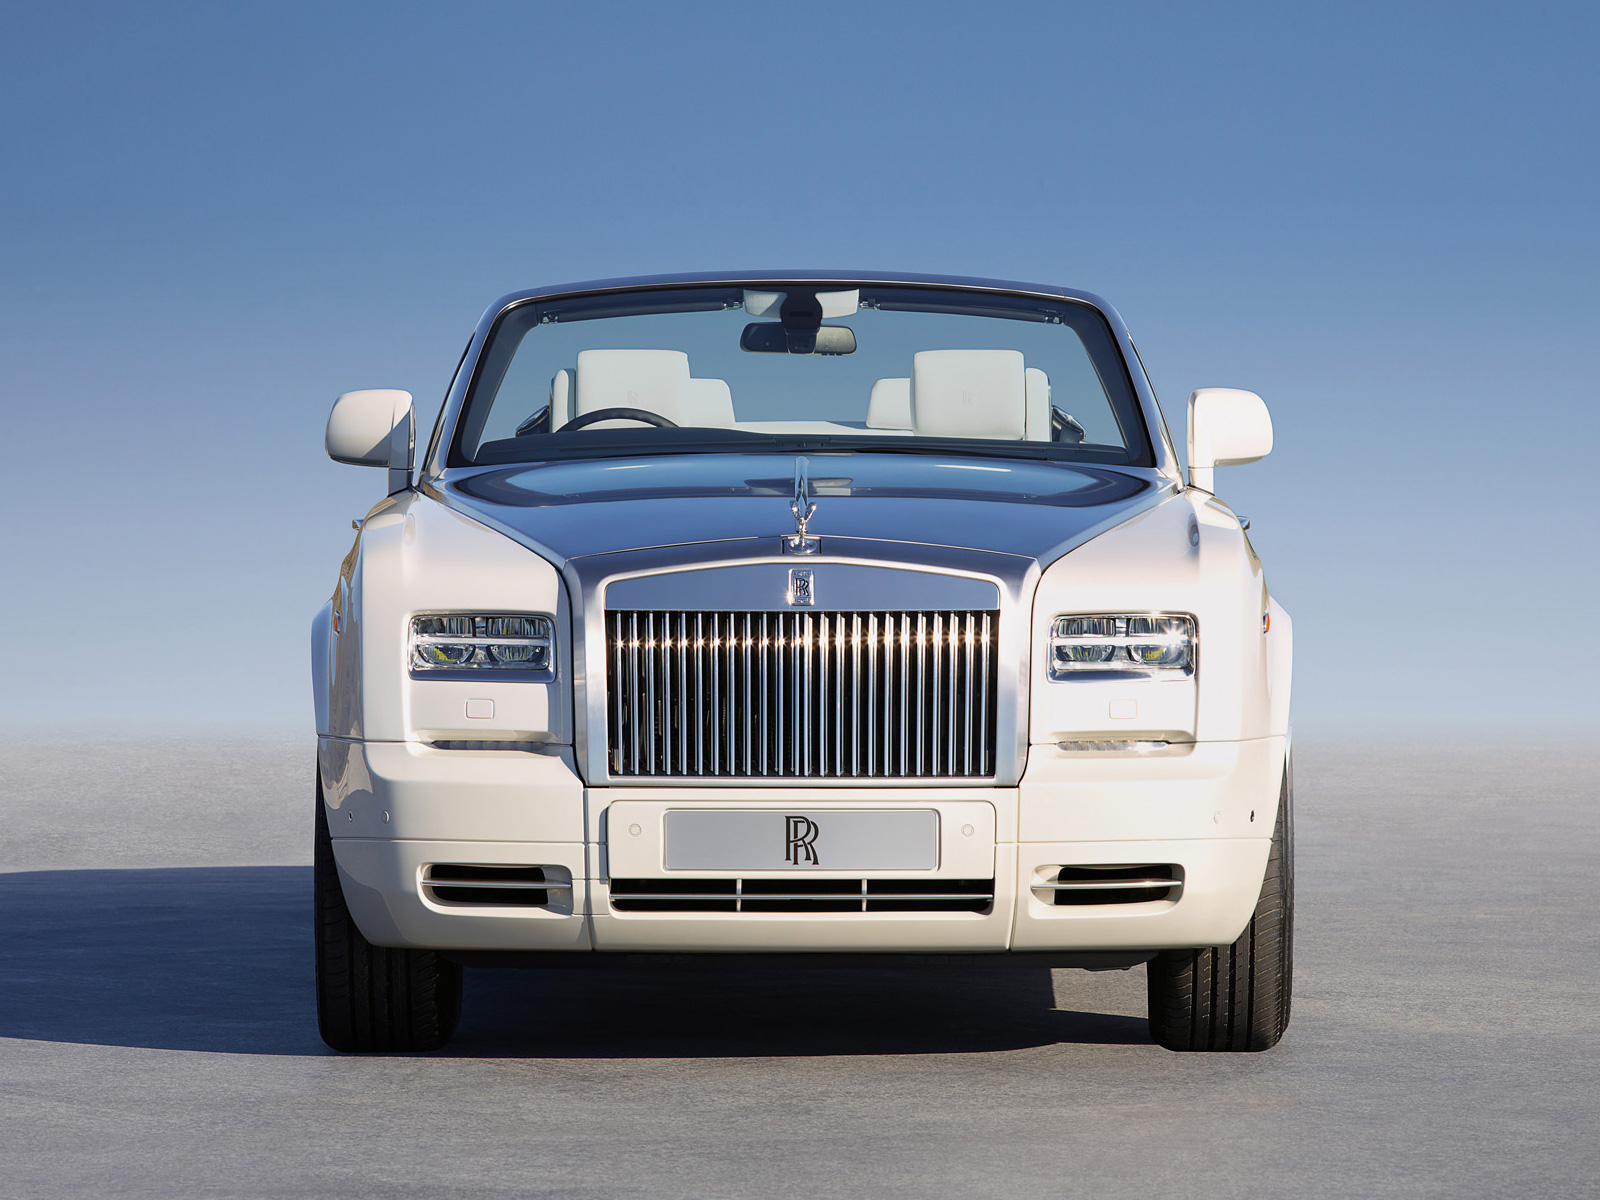 2012 Rolls royce Phantom Drophead Coupe #4